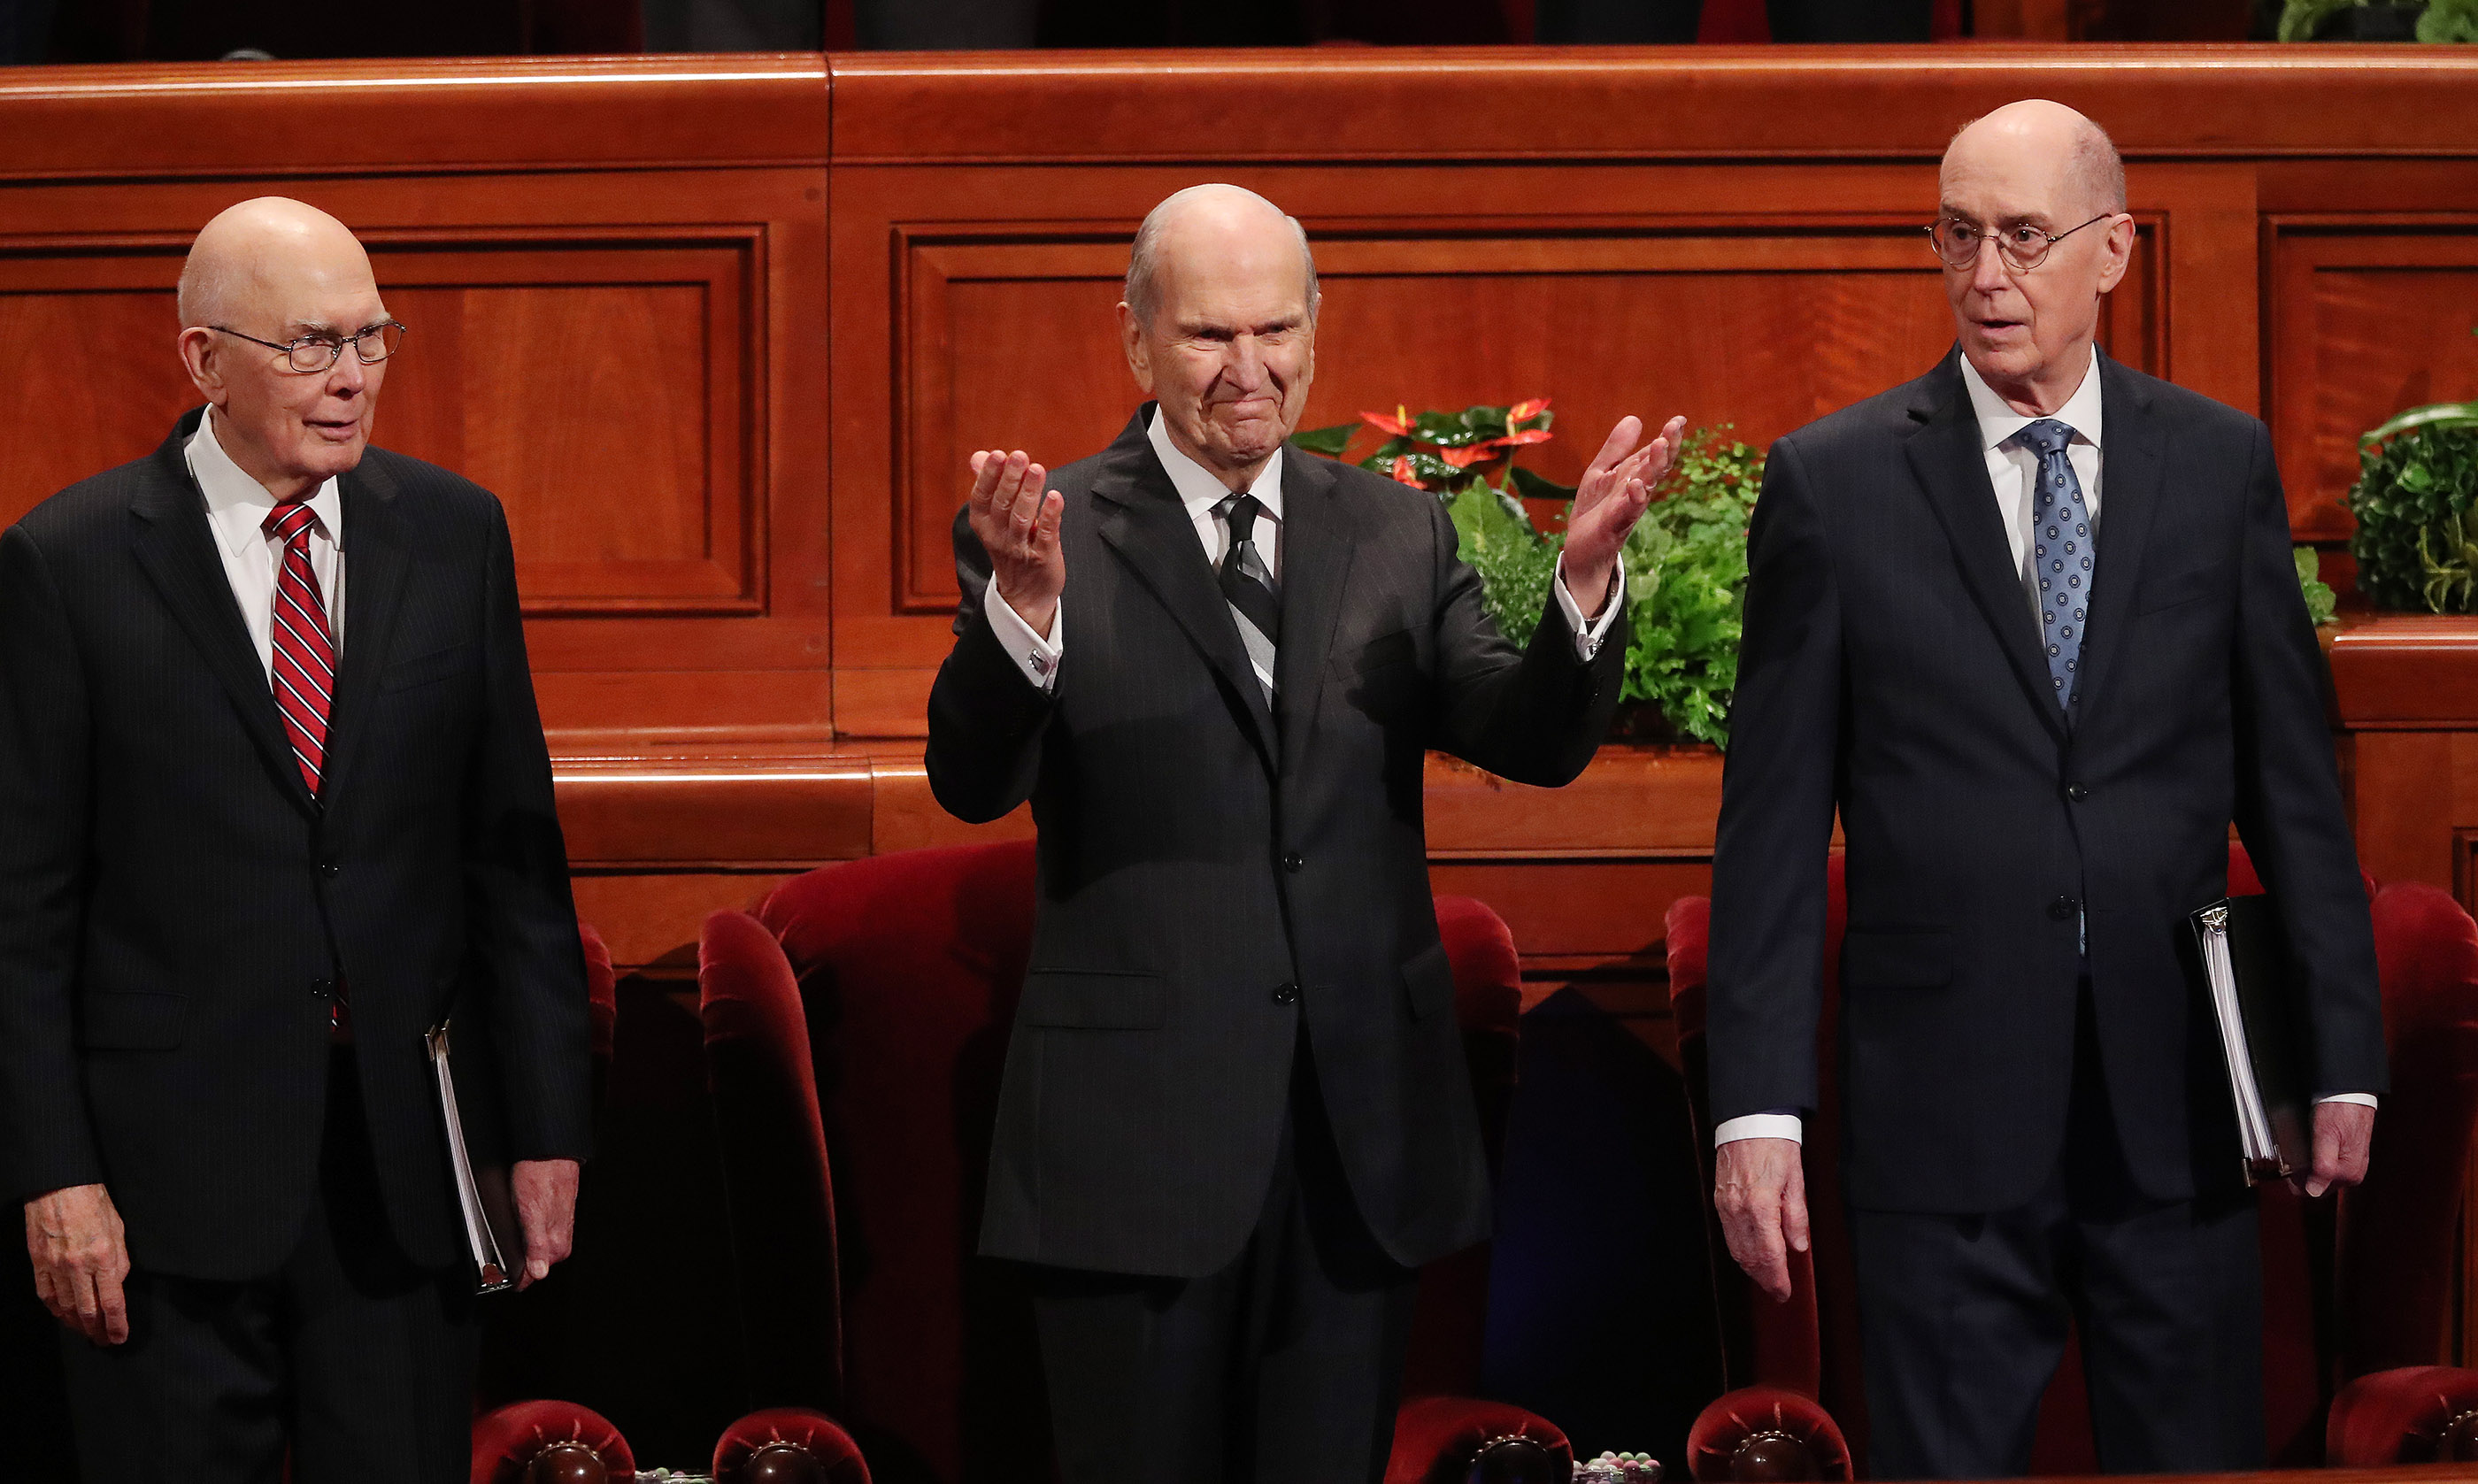 President Russell M. Nelson of The Church of Jesus Christ of Latter-day Saints, center, and his counselors, President Dallin H. Oaks, first counselor, left, and President Henry B. Eyring, second counselor, right, enter the Conference Center in Salt Lake City for the Saturday morning session of the 188th Semiannual General Conference of The Church of Jesus Christ of Latter-day Saints in Salt Lake City on Saturday, Oct. 6, 2018.